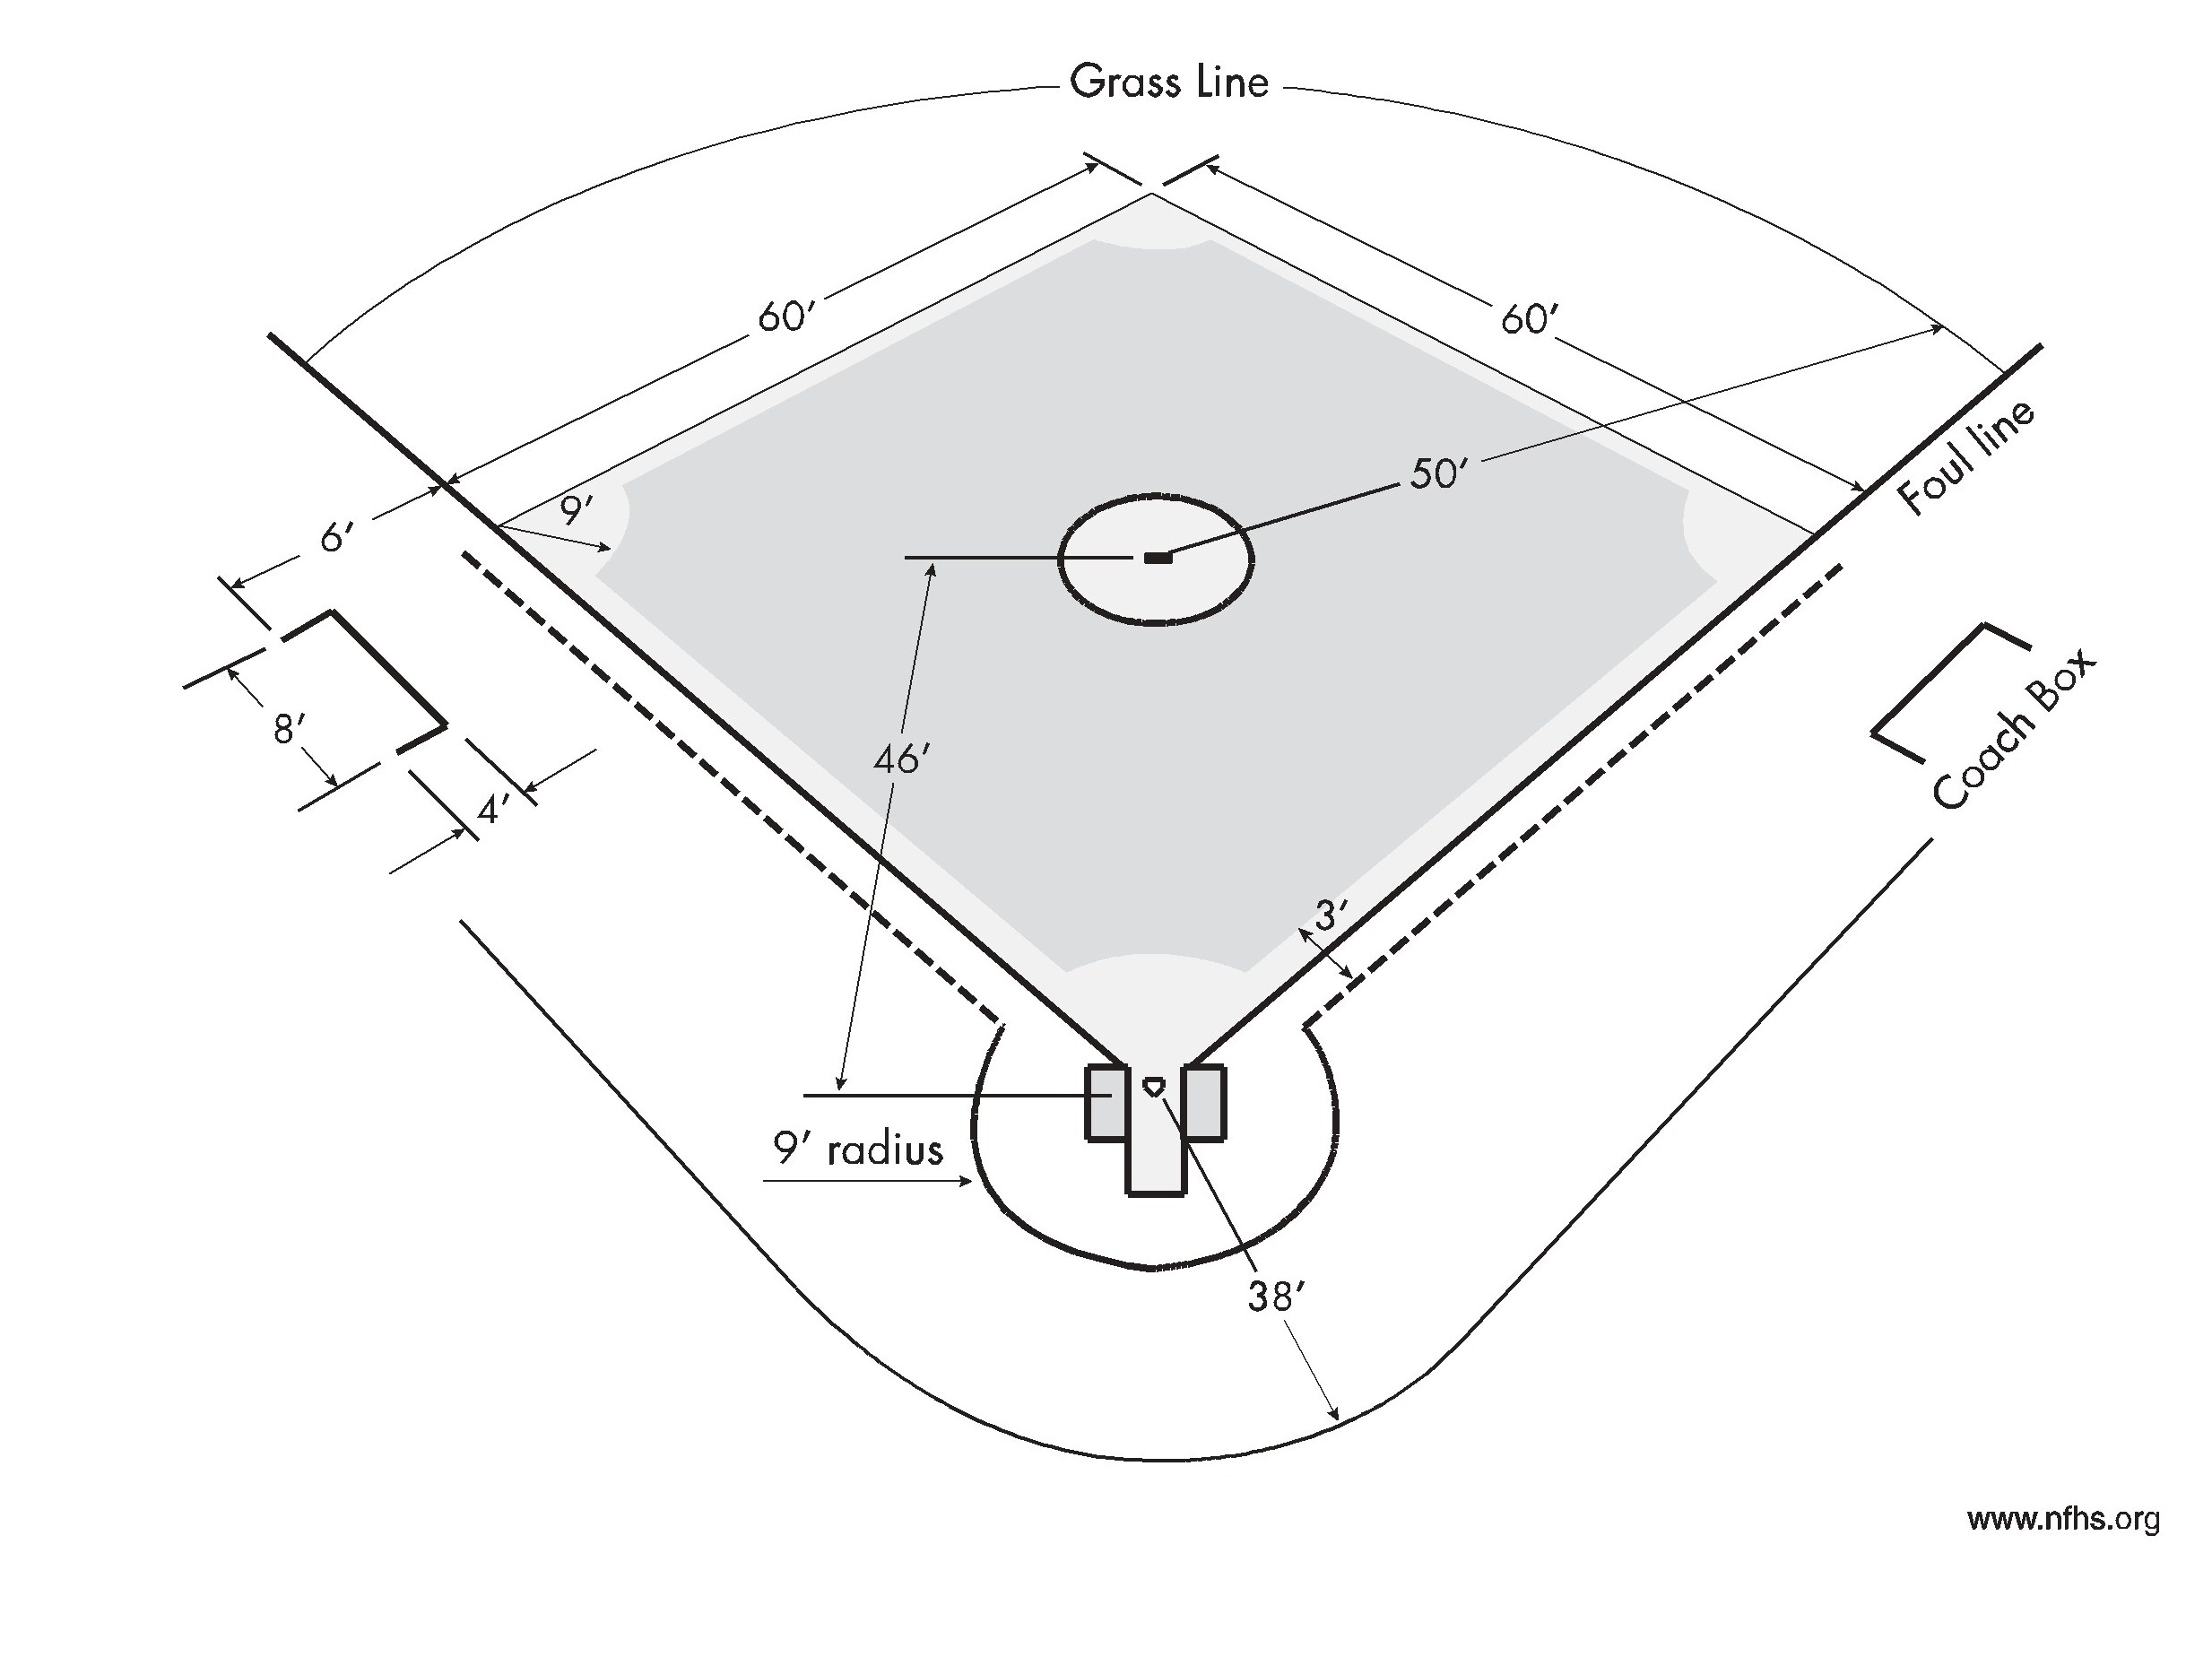 simple bat diagram water erosion baseball dimensions drawing at getdrawings free